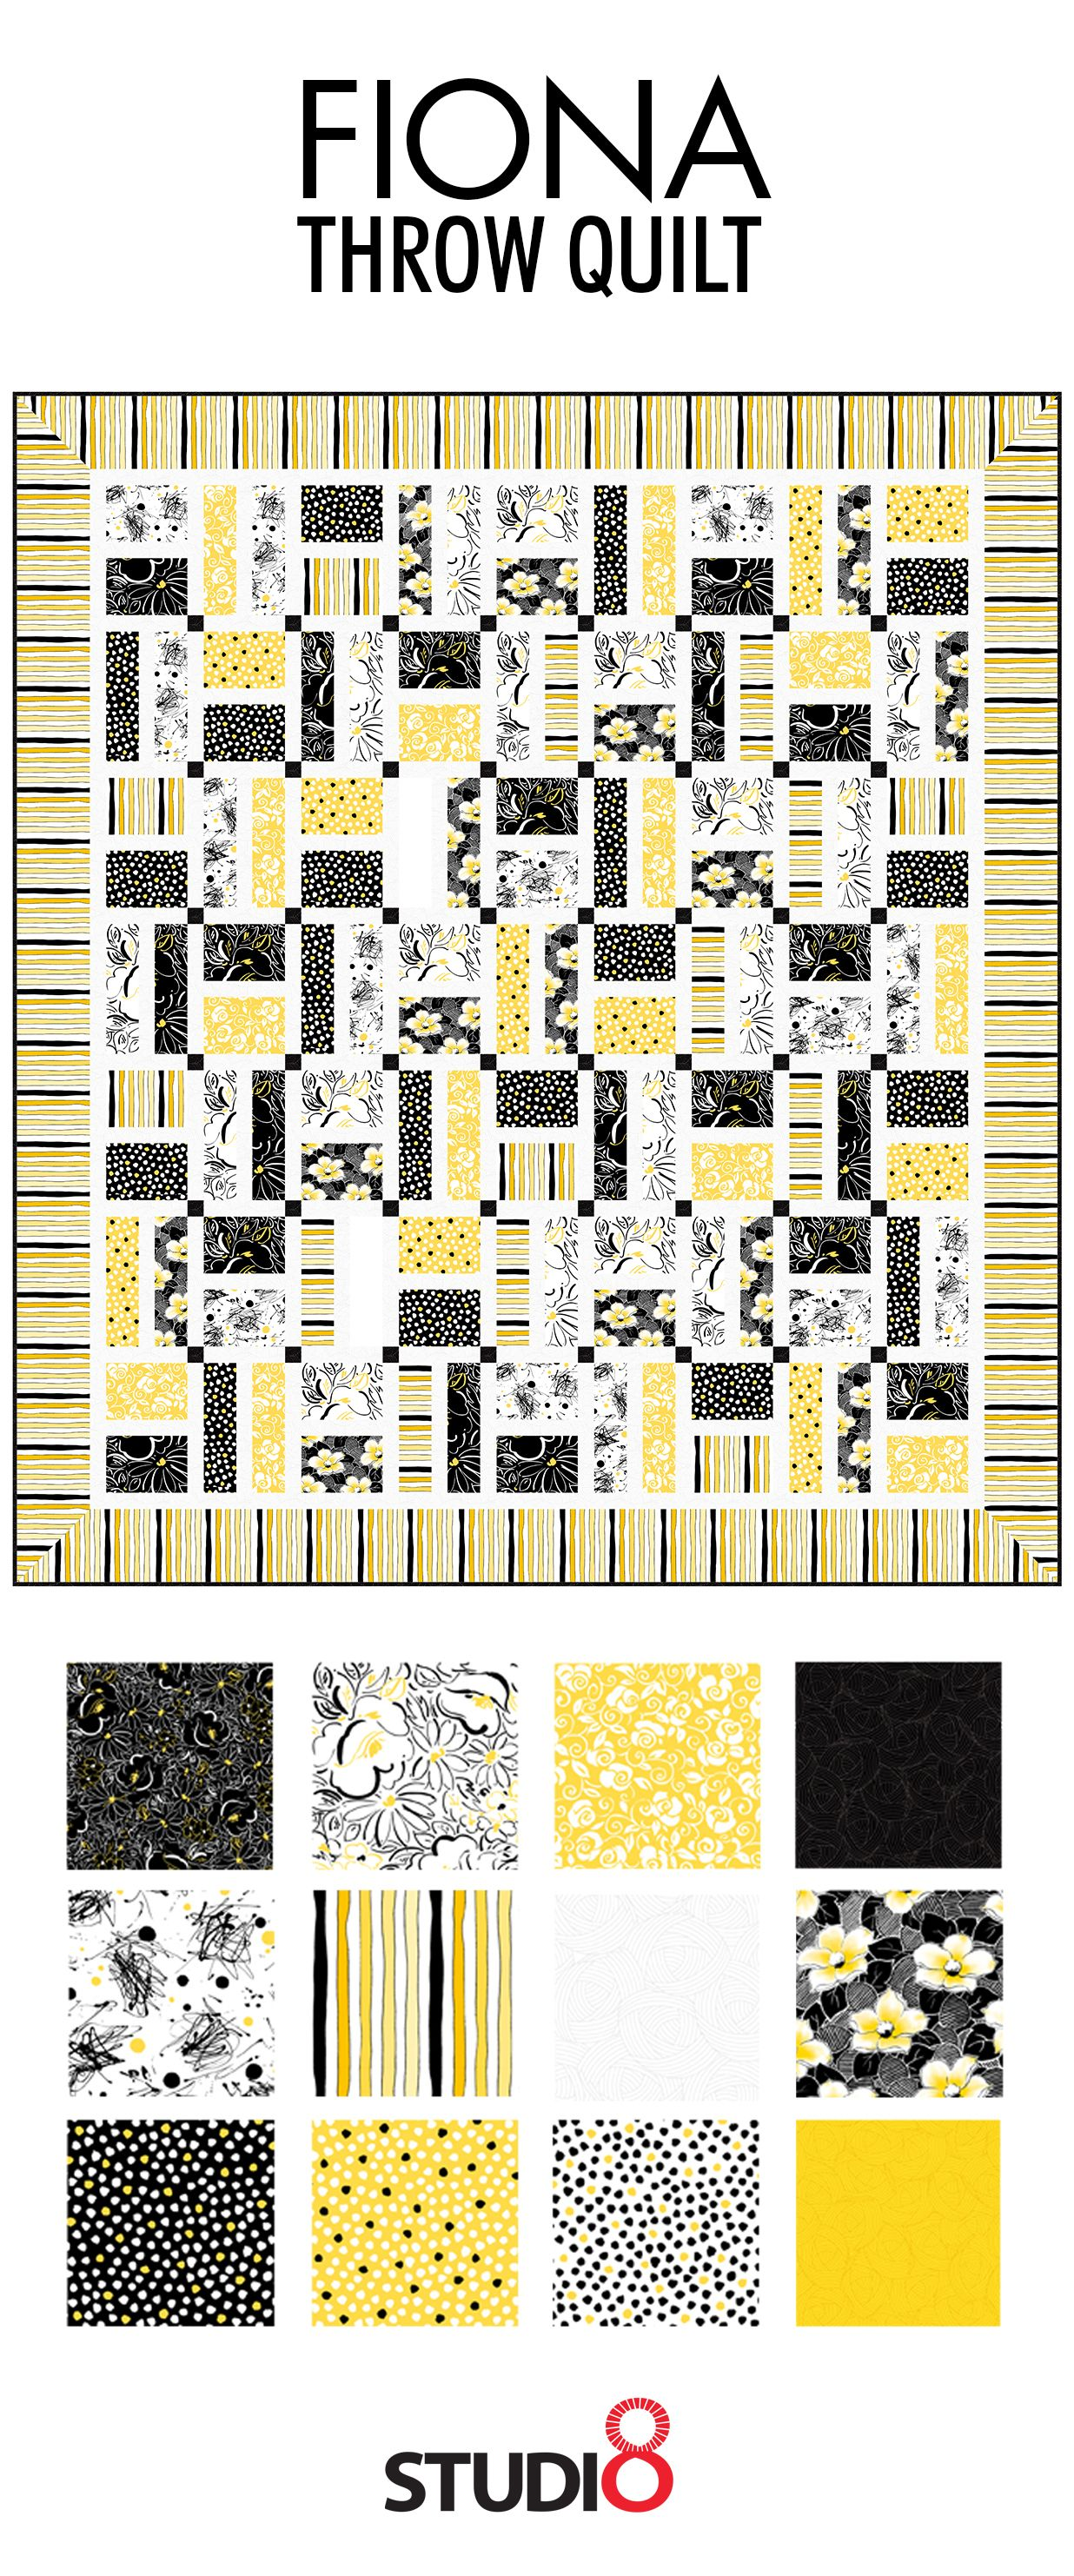 Make This Trendy Fiona Throw Quilt Today Using Our Free Quilt Pattern! This  Color Palette Of Yellow, White, And Black Will Add A Chic Pop To Any Room!